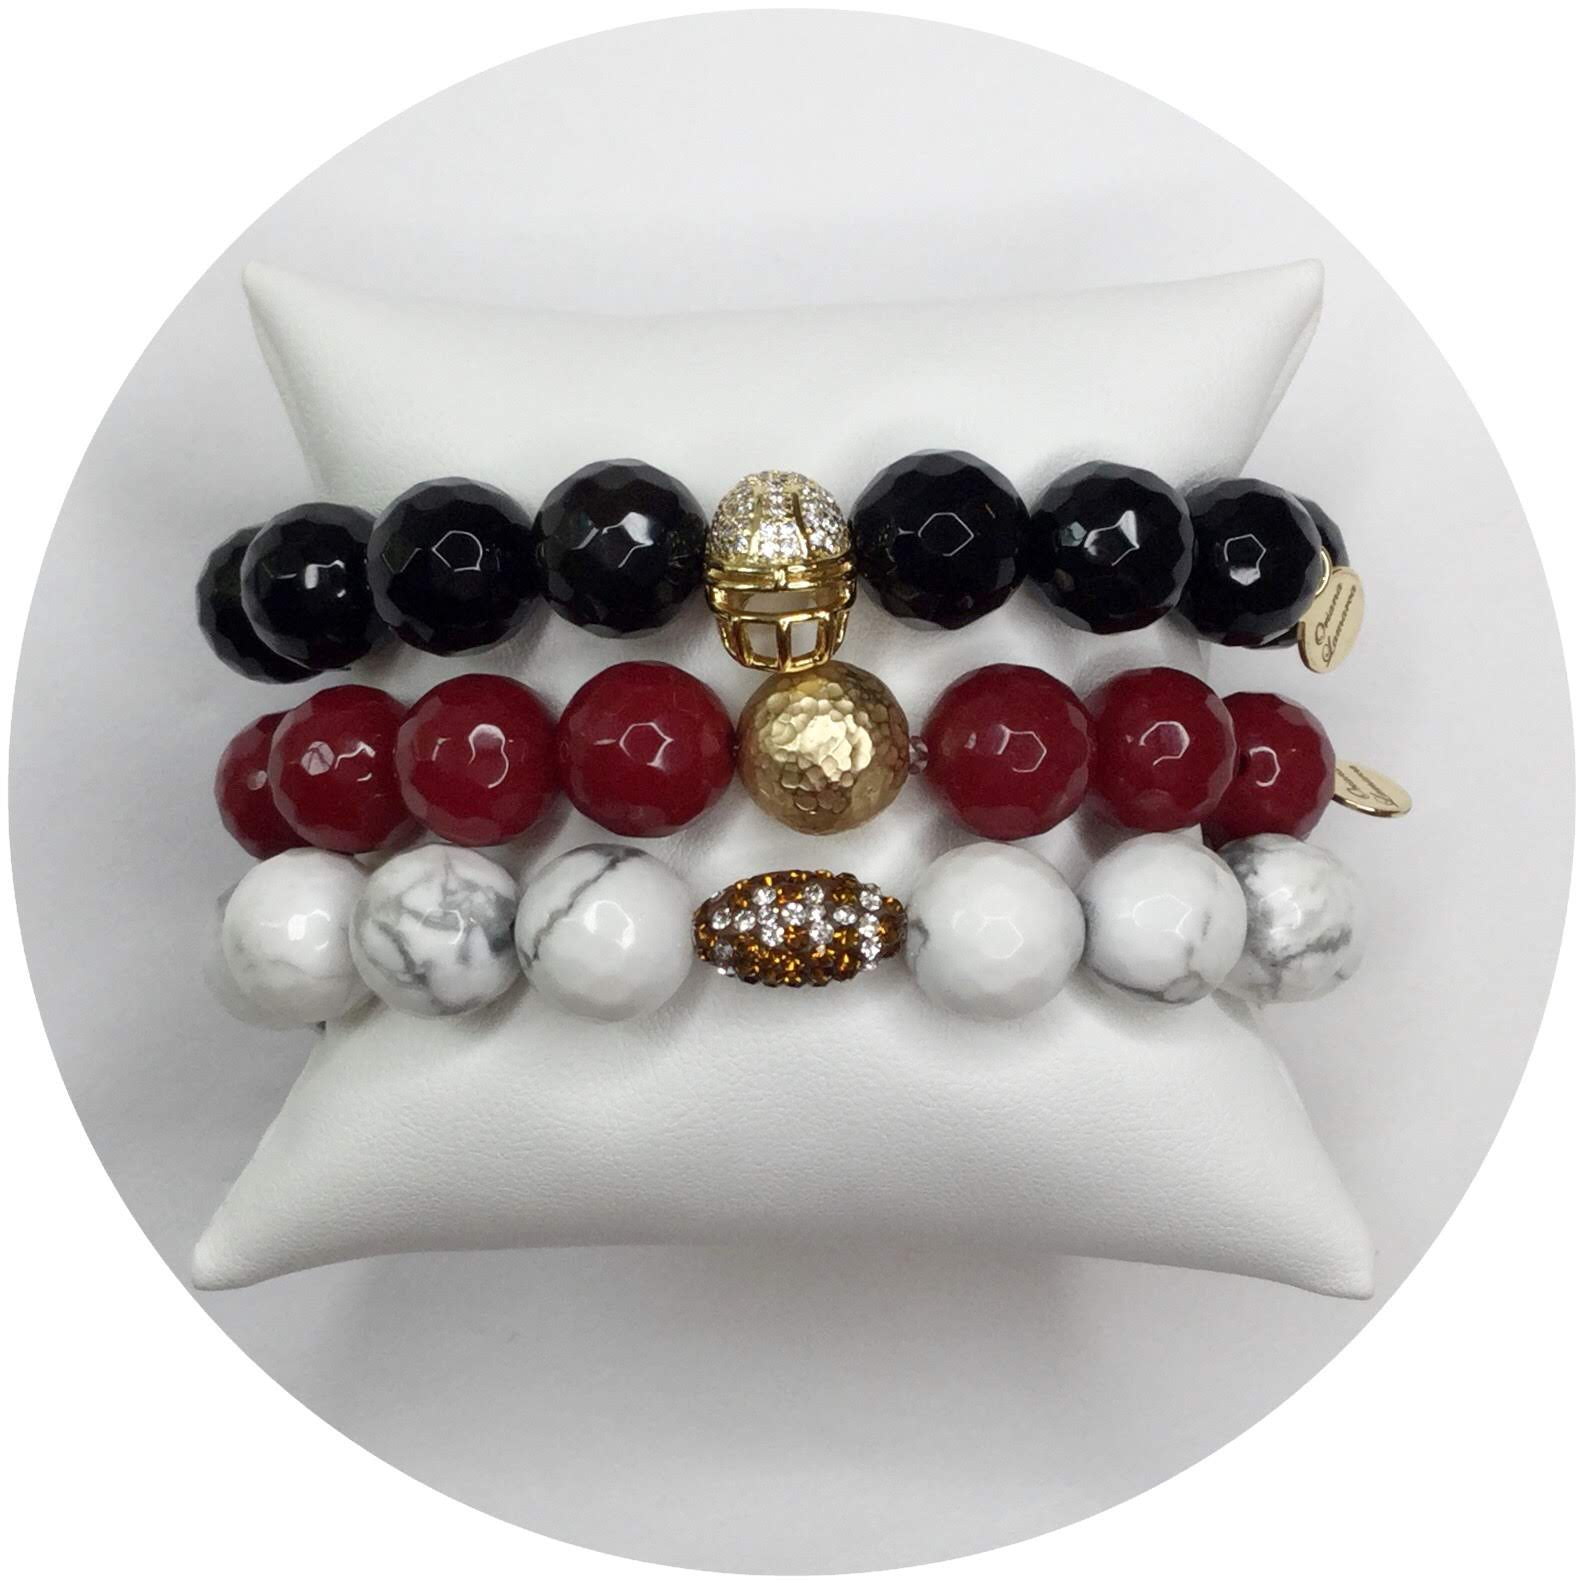 Atlanta Falcons Armparty - Oriana Lamarca LLC